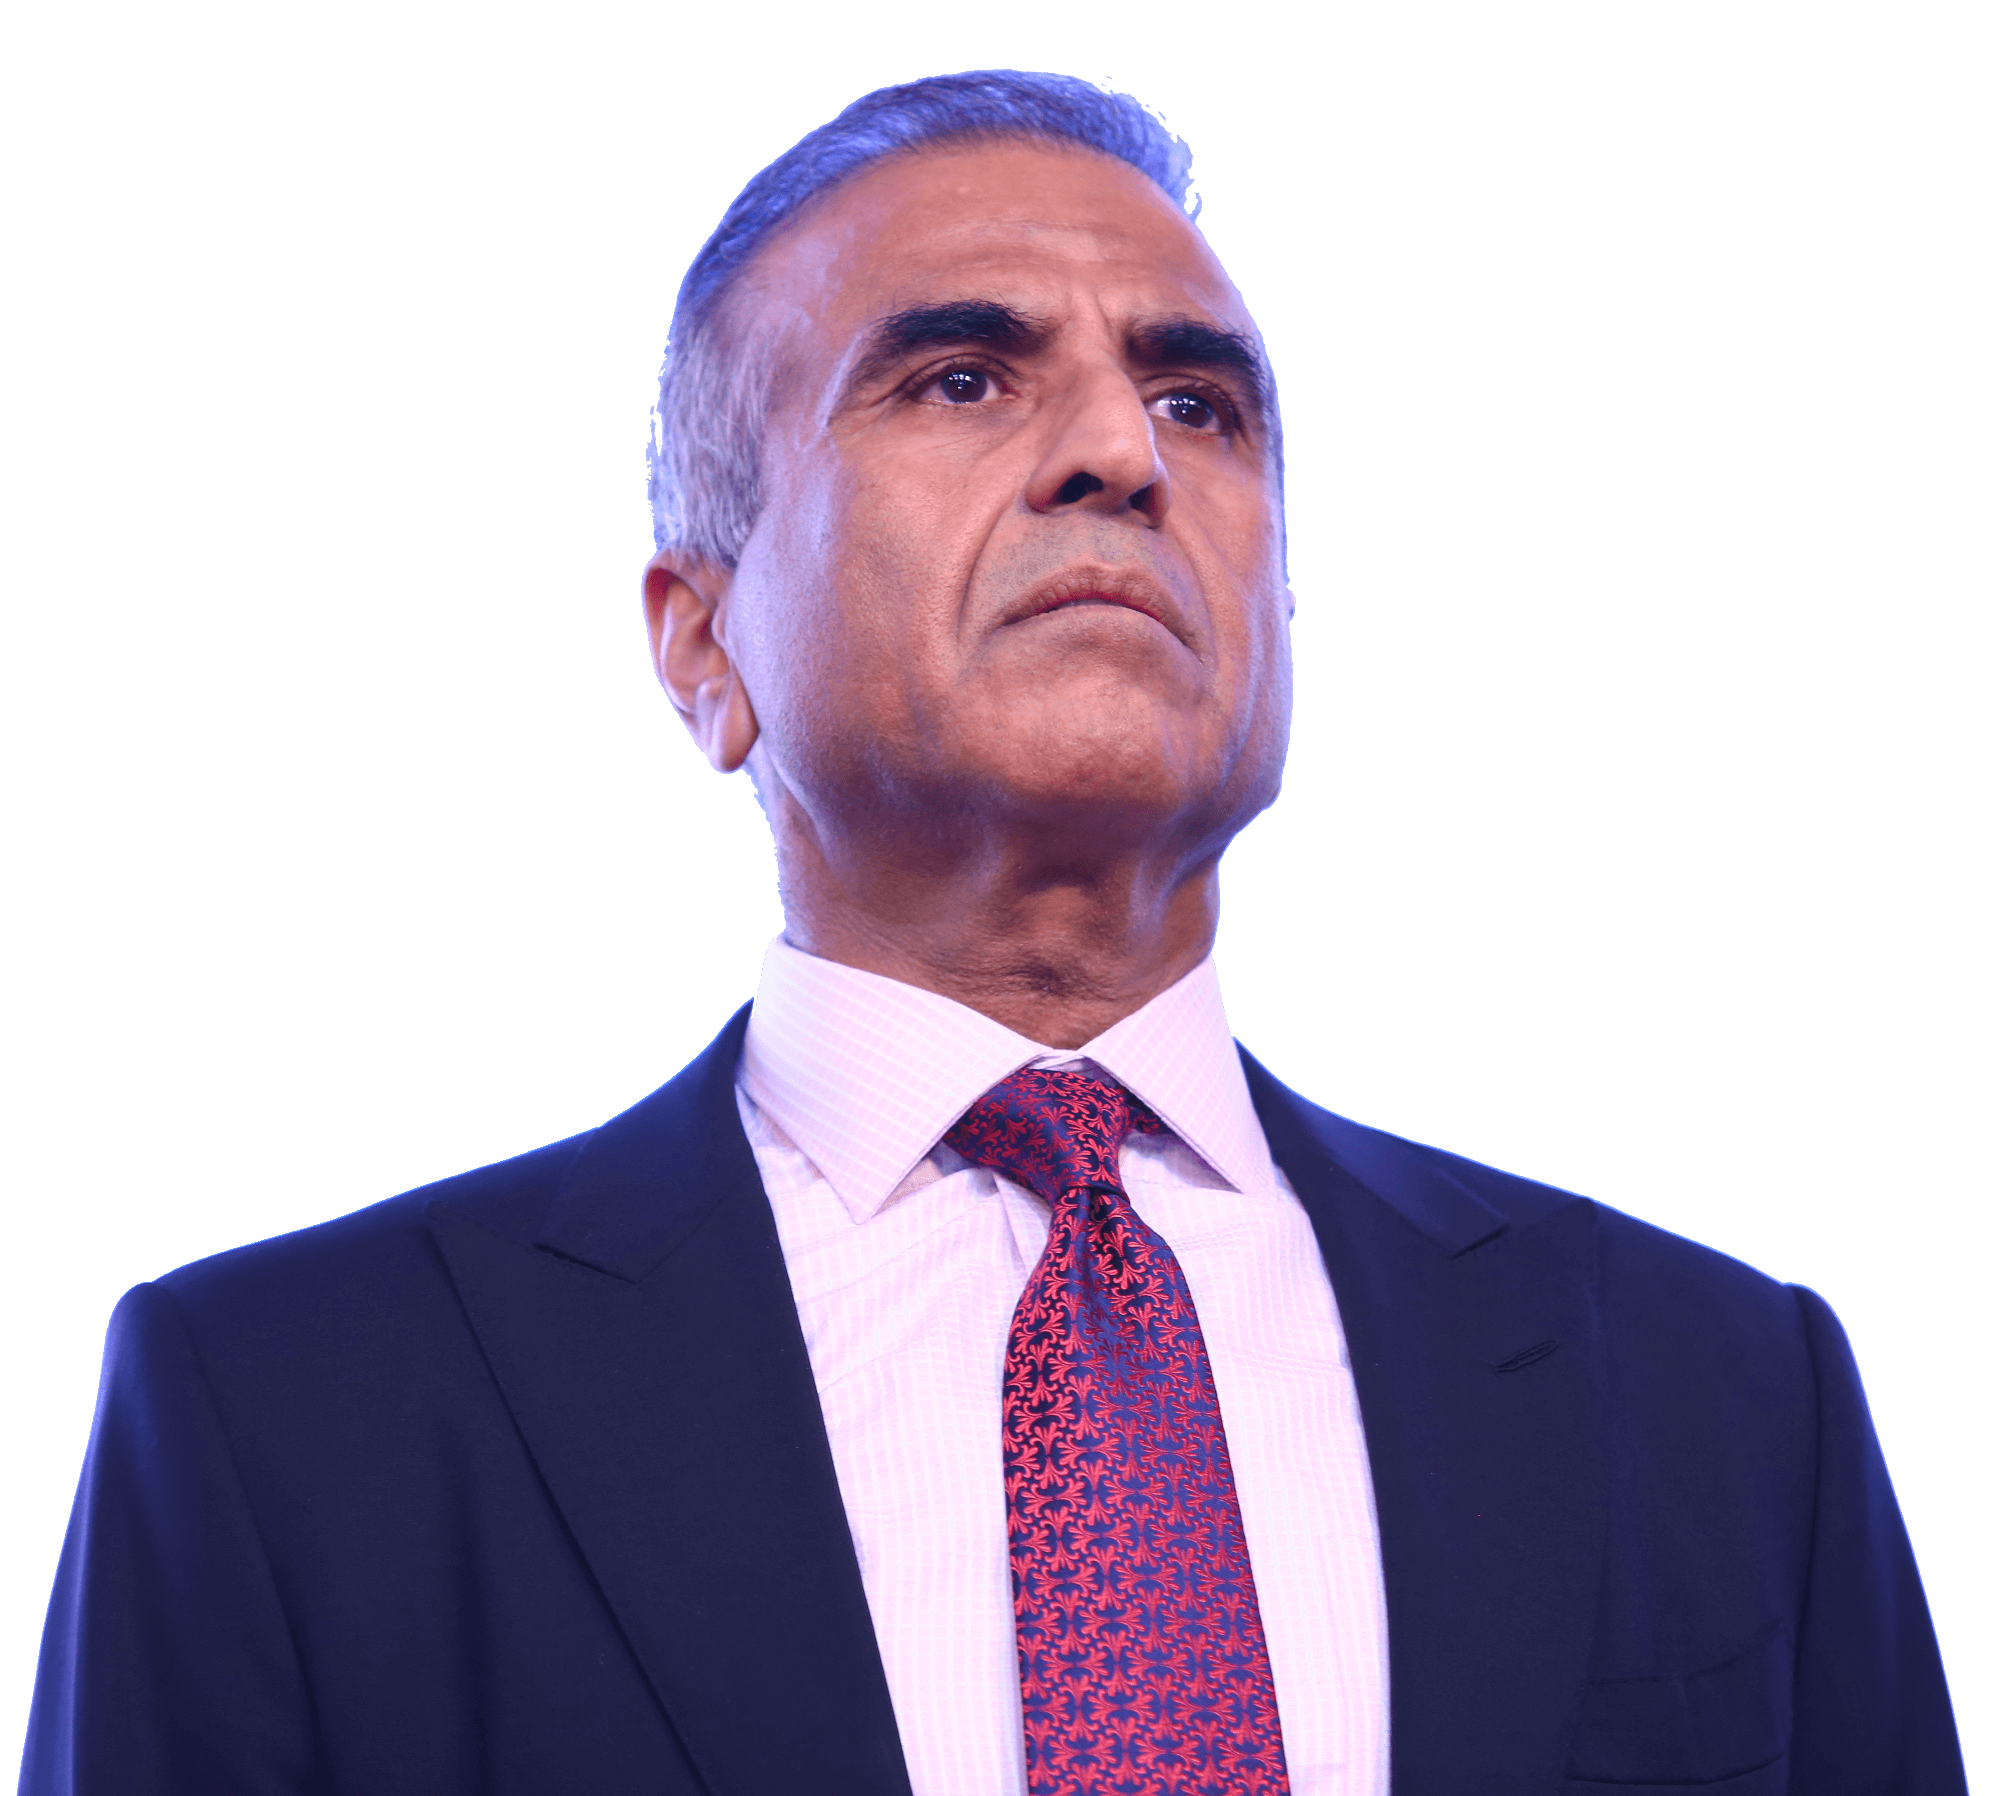 Sunil Bharti Mittal Biography